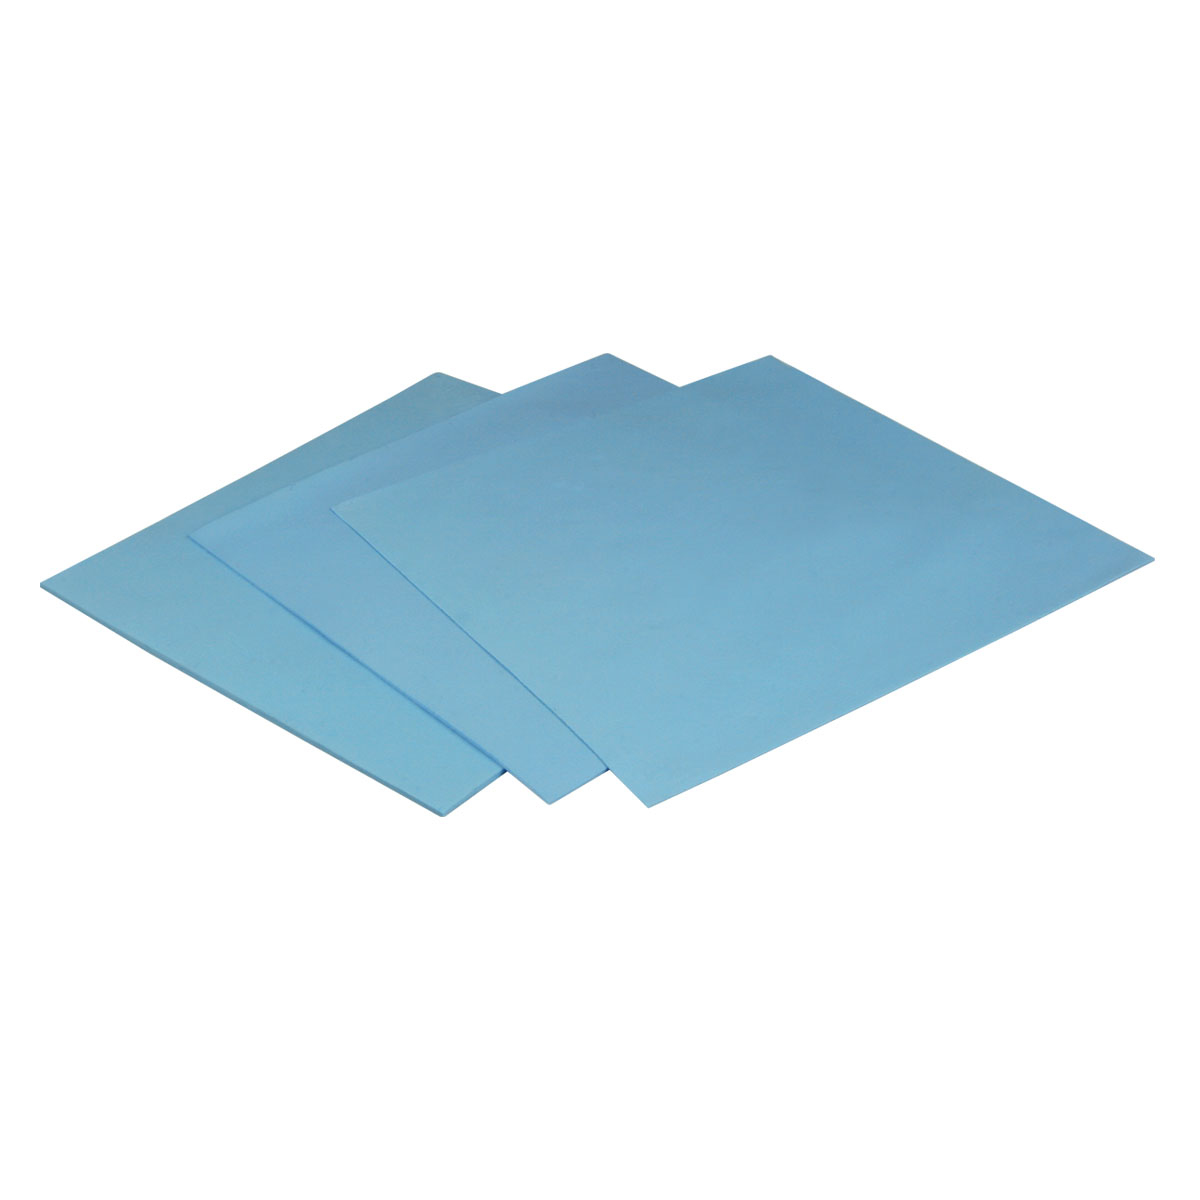 ACTPD00006A ARCTIC Thermal Pad 145 x 145 mm (1.5 mm) - High Performance Thermal Pad - Ent01